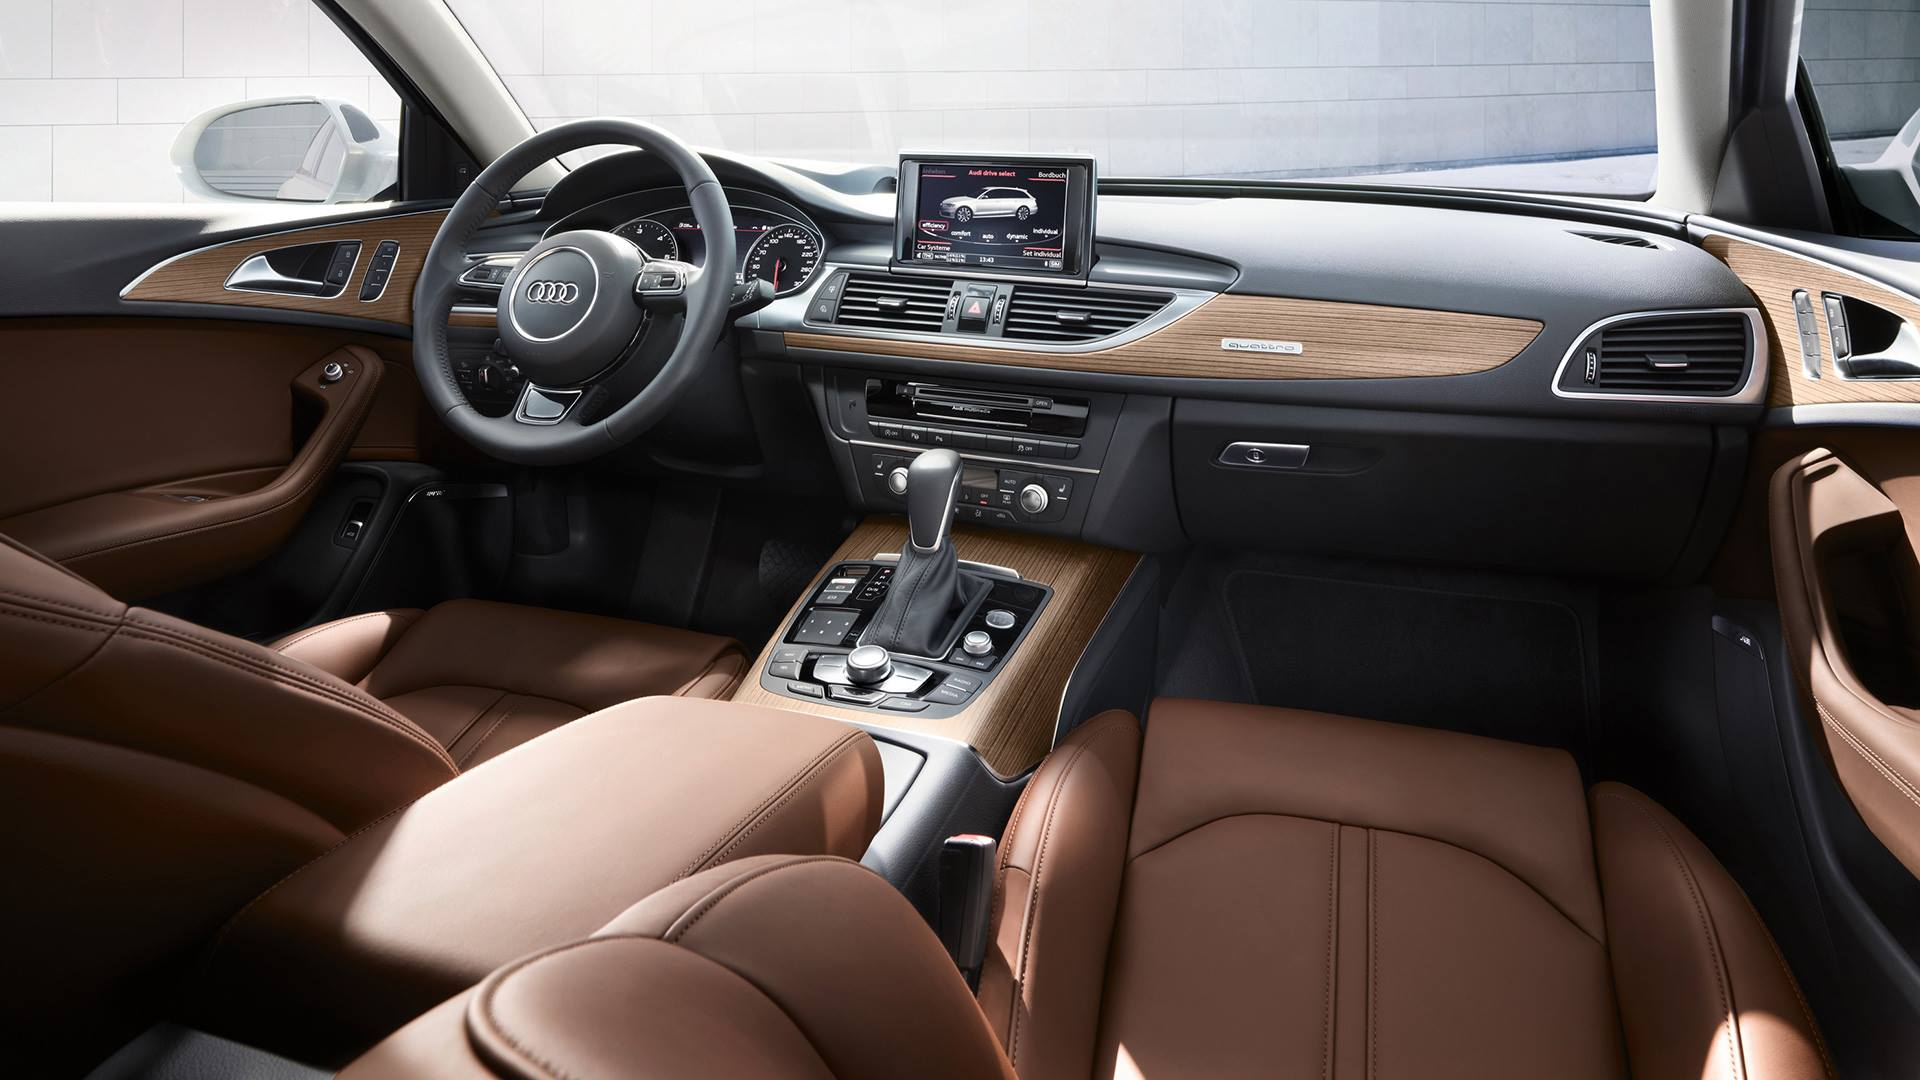 2017 jaguar xe priced from 34 900 new 2016 xf from 51 900. Black Bedroom Furniture Sets. Home Design Ideas